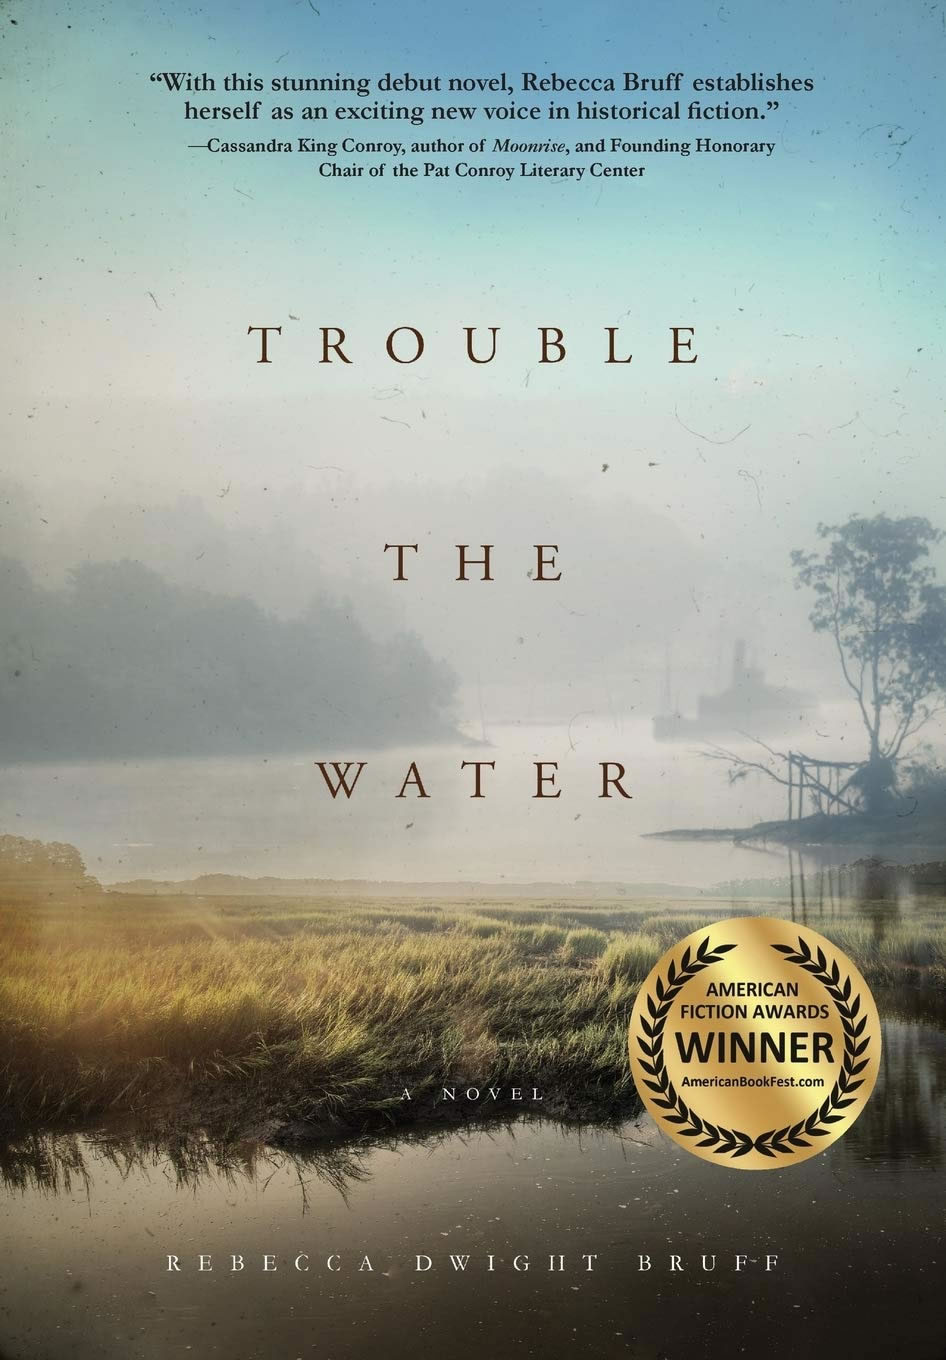 Cover of Trouble the Water by Rebecca Dwight Bruff